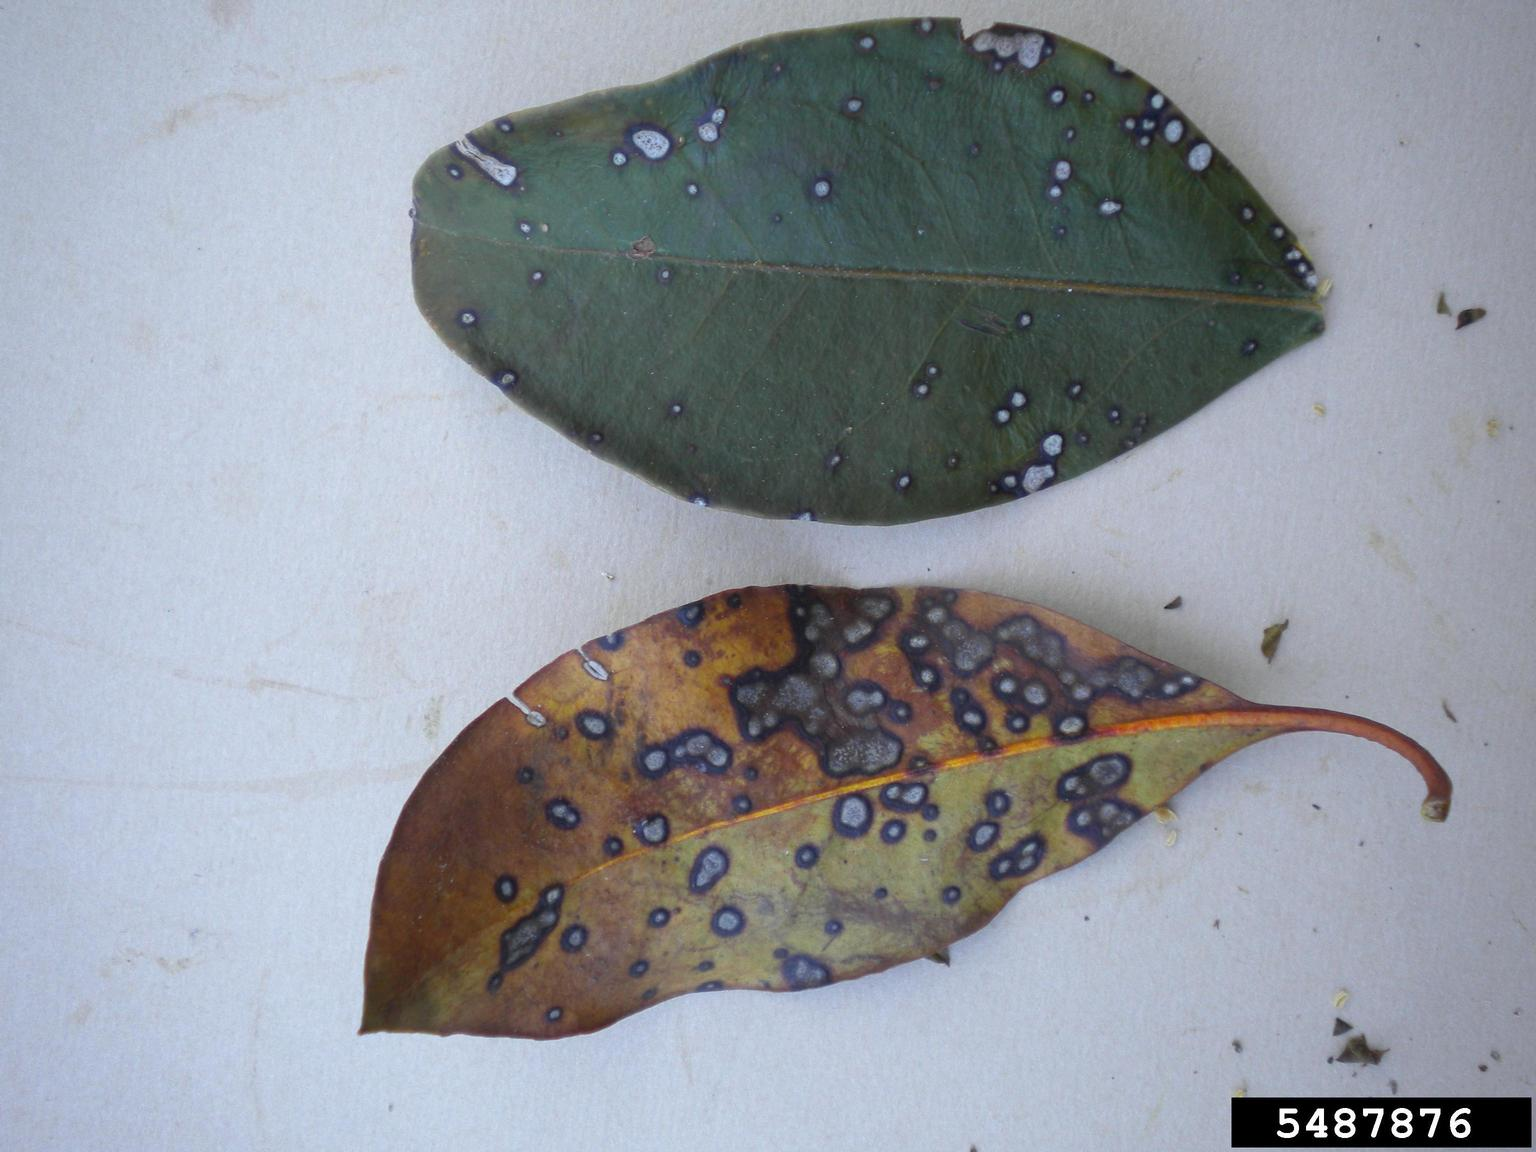 1543149736 treating sick mountain laurels learn about common mountain laurel diseases takeseeds com - Treating Sick Mountain Laurels – Learn About Common Mountain Laurel Diseases